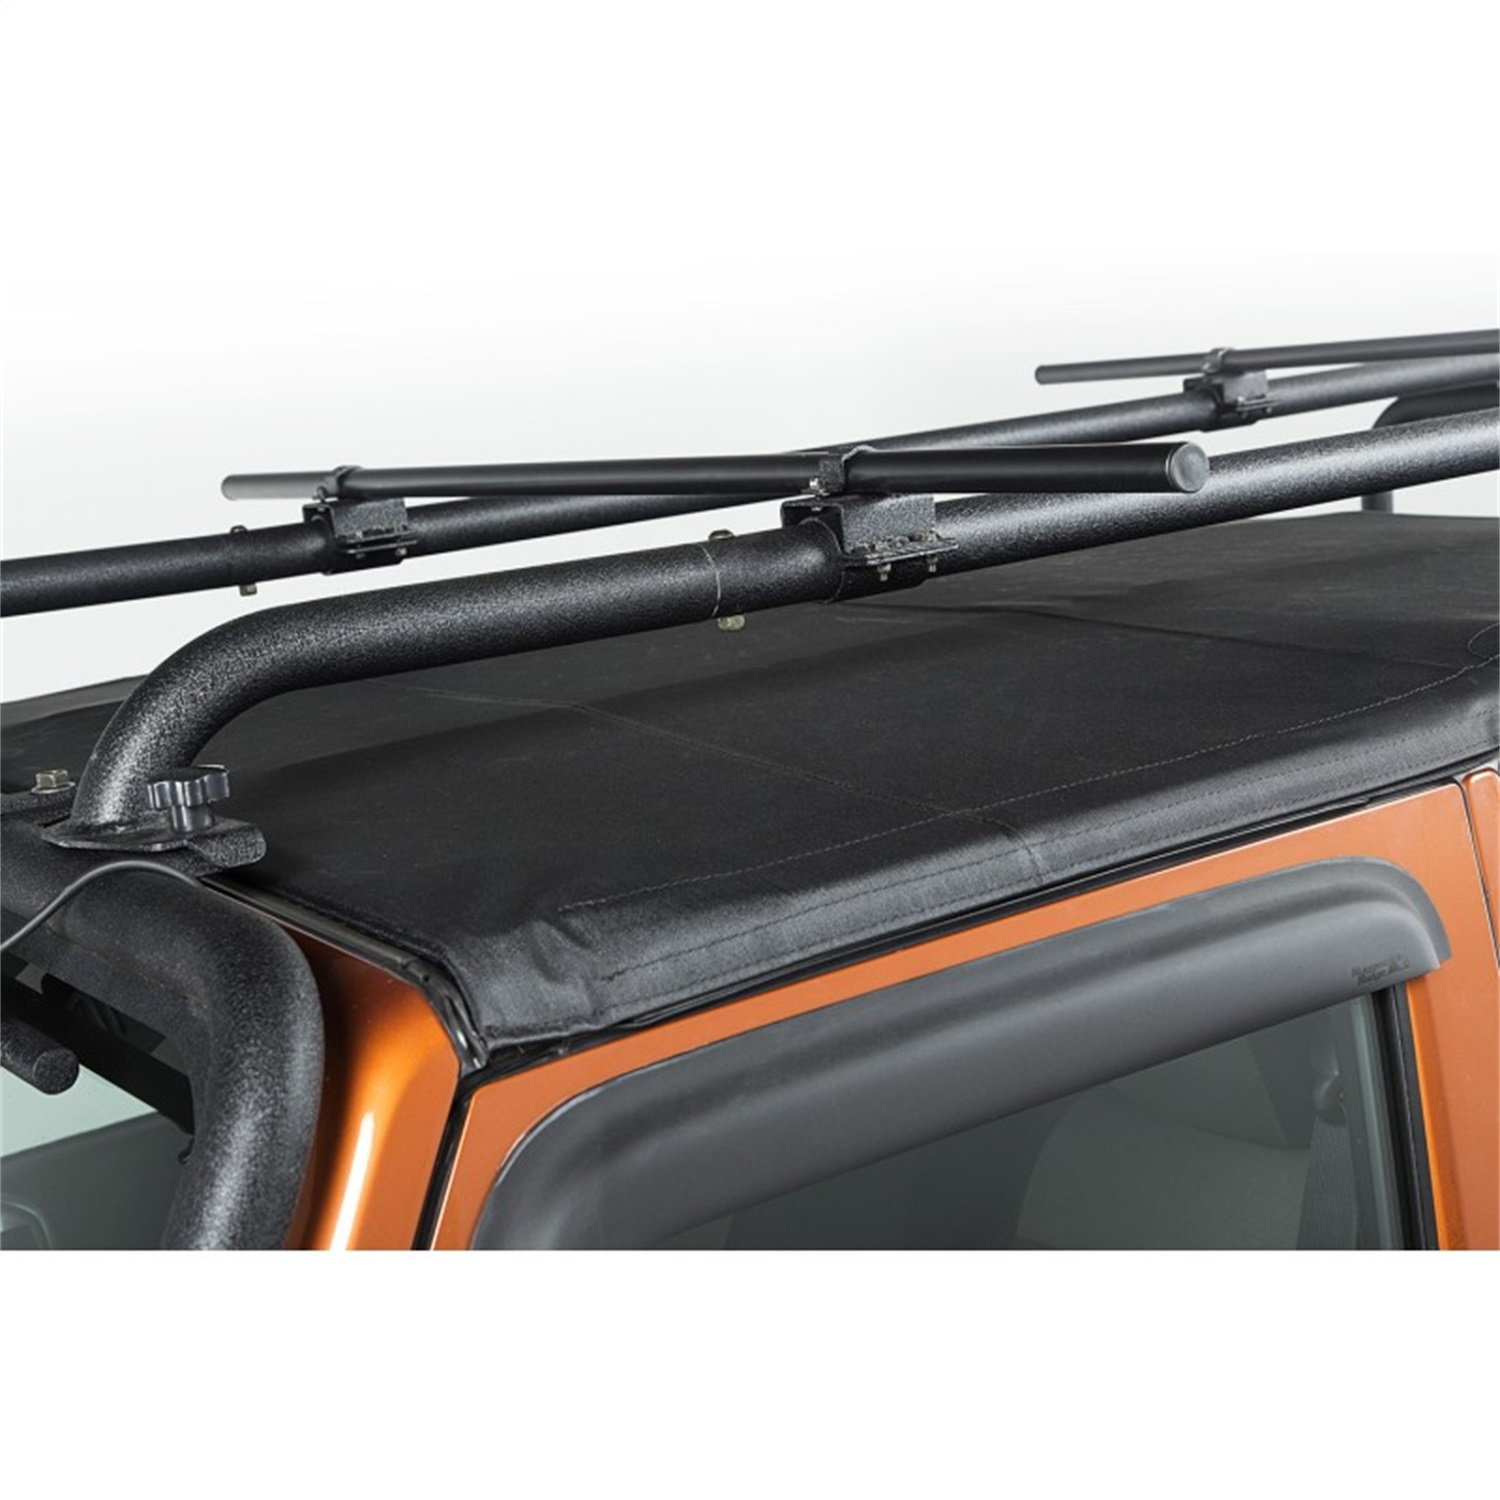 Rugged Ridge 1170311 Sherpa Roof Rack Crossbars